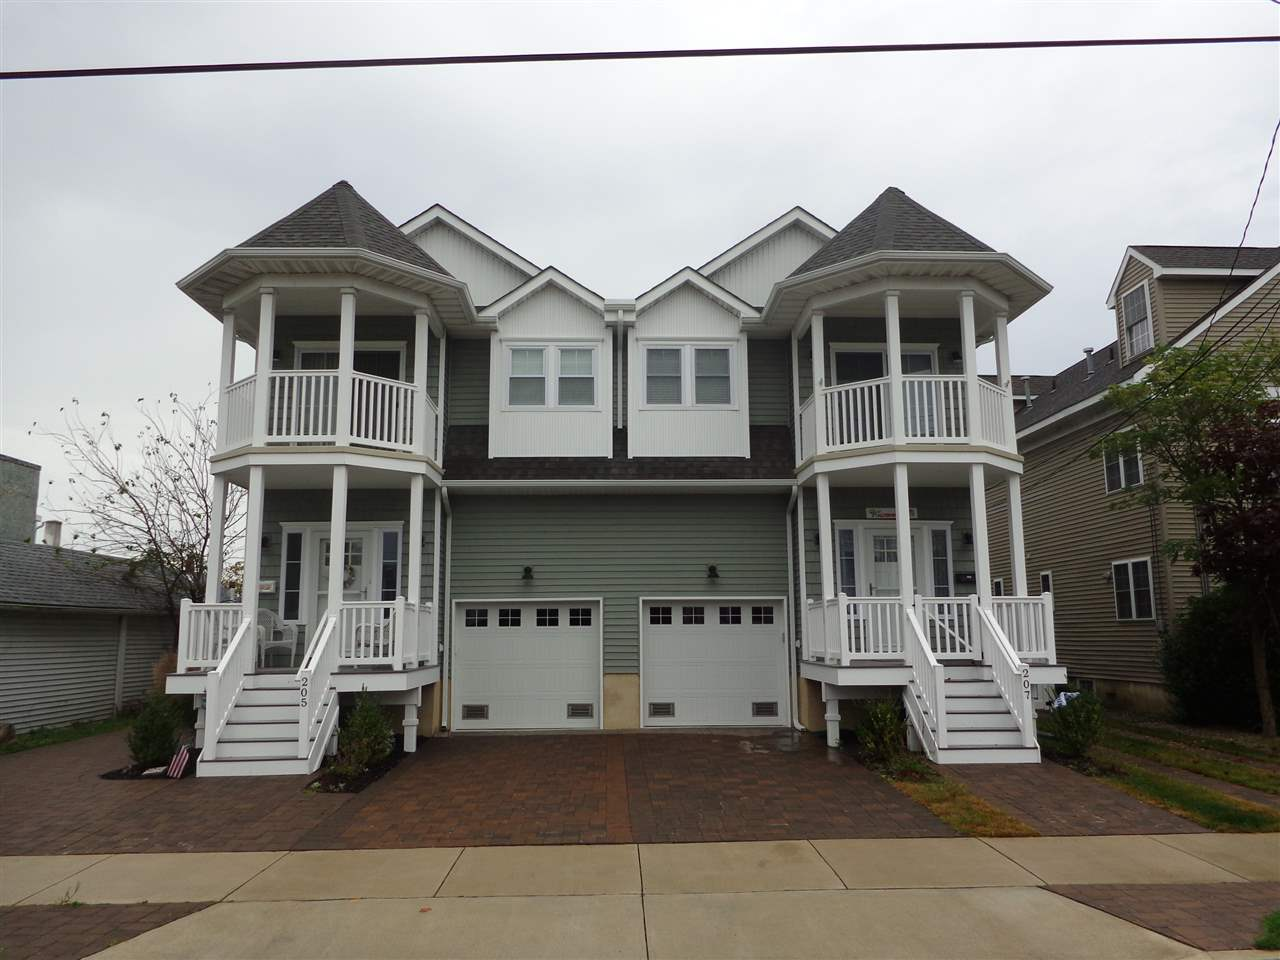 Condo / Townhouse for Sale at 124 W 20th Street 124 W 20th Street North Wildwood, New Jersey 08260 United States